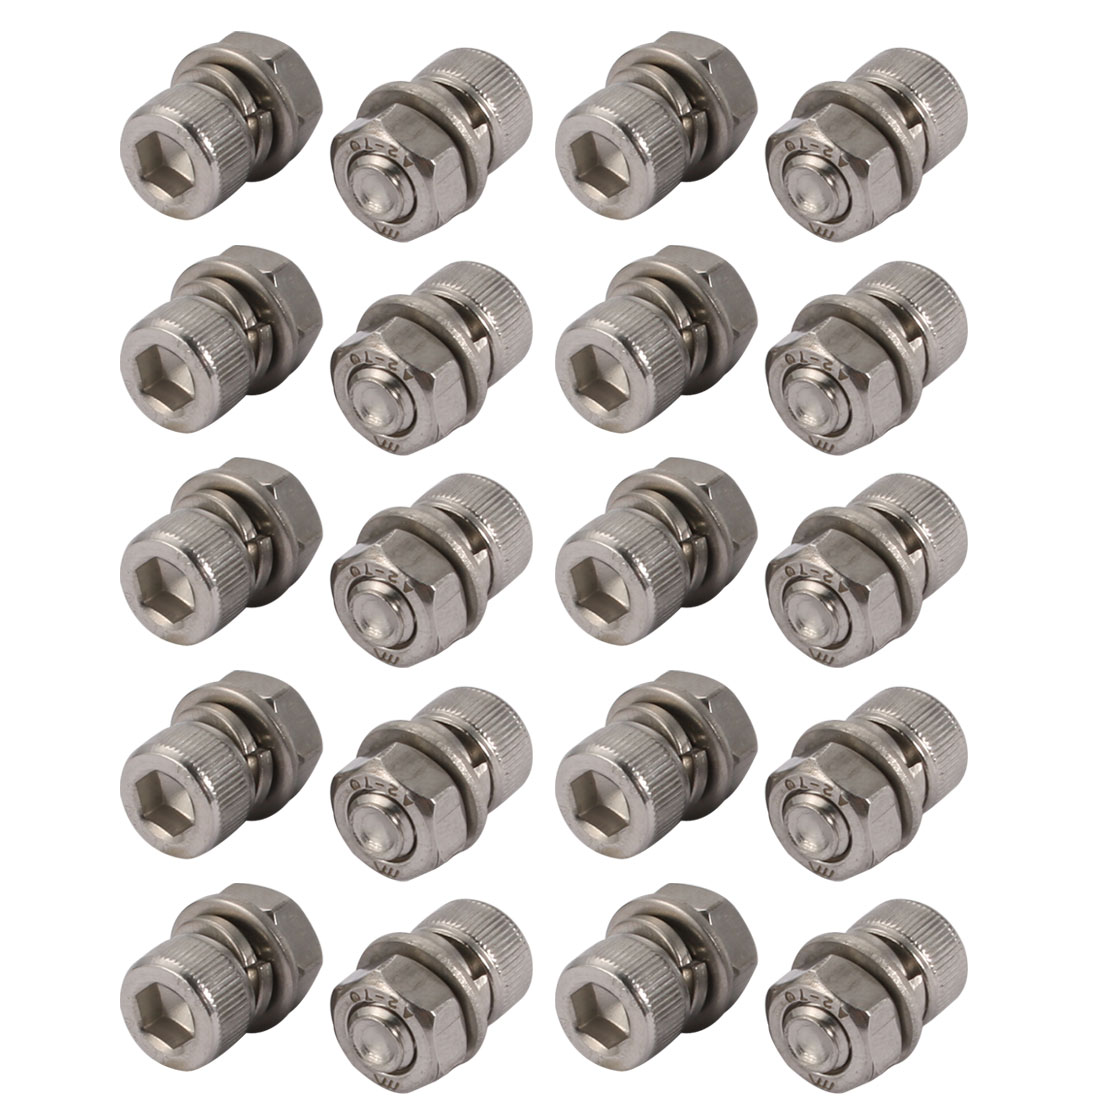 20Pcs M6x10mm 304 Stainless Steel Knurled Hex Socket Head Bolt Nuts Set w Washer